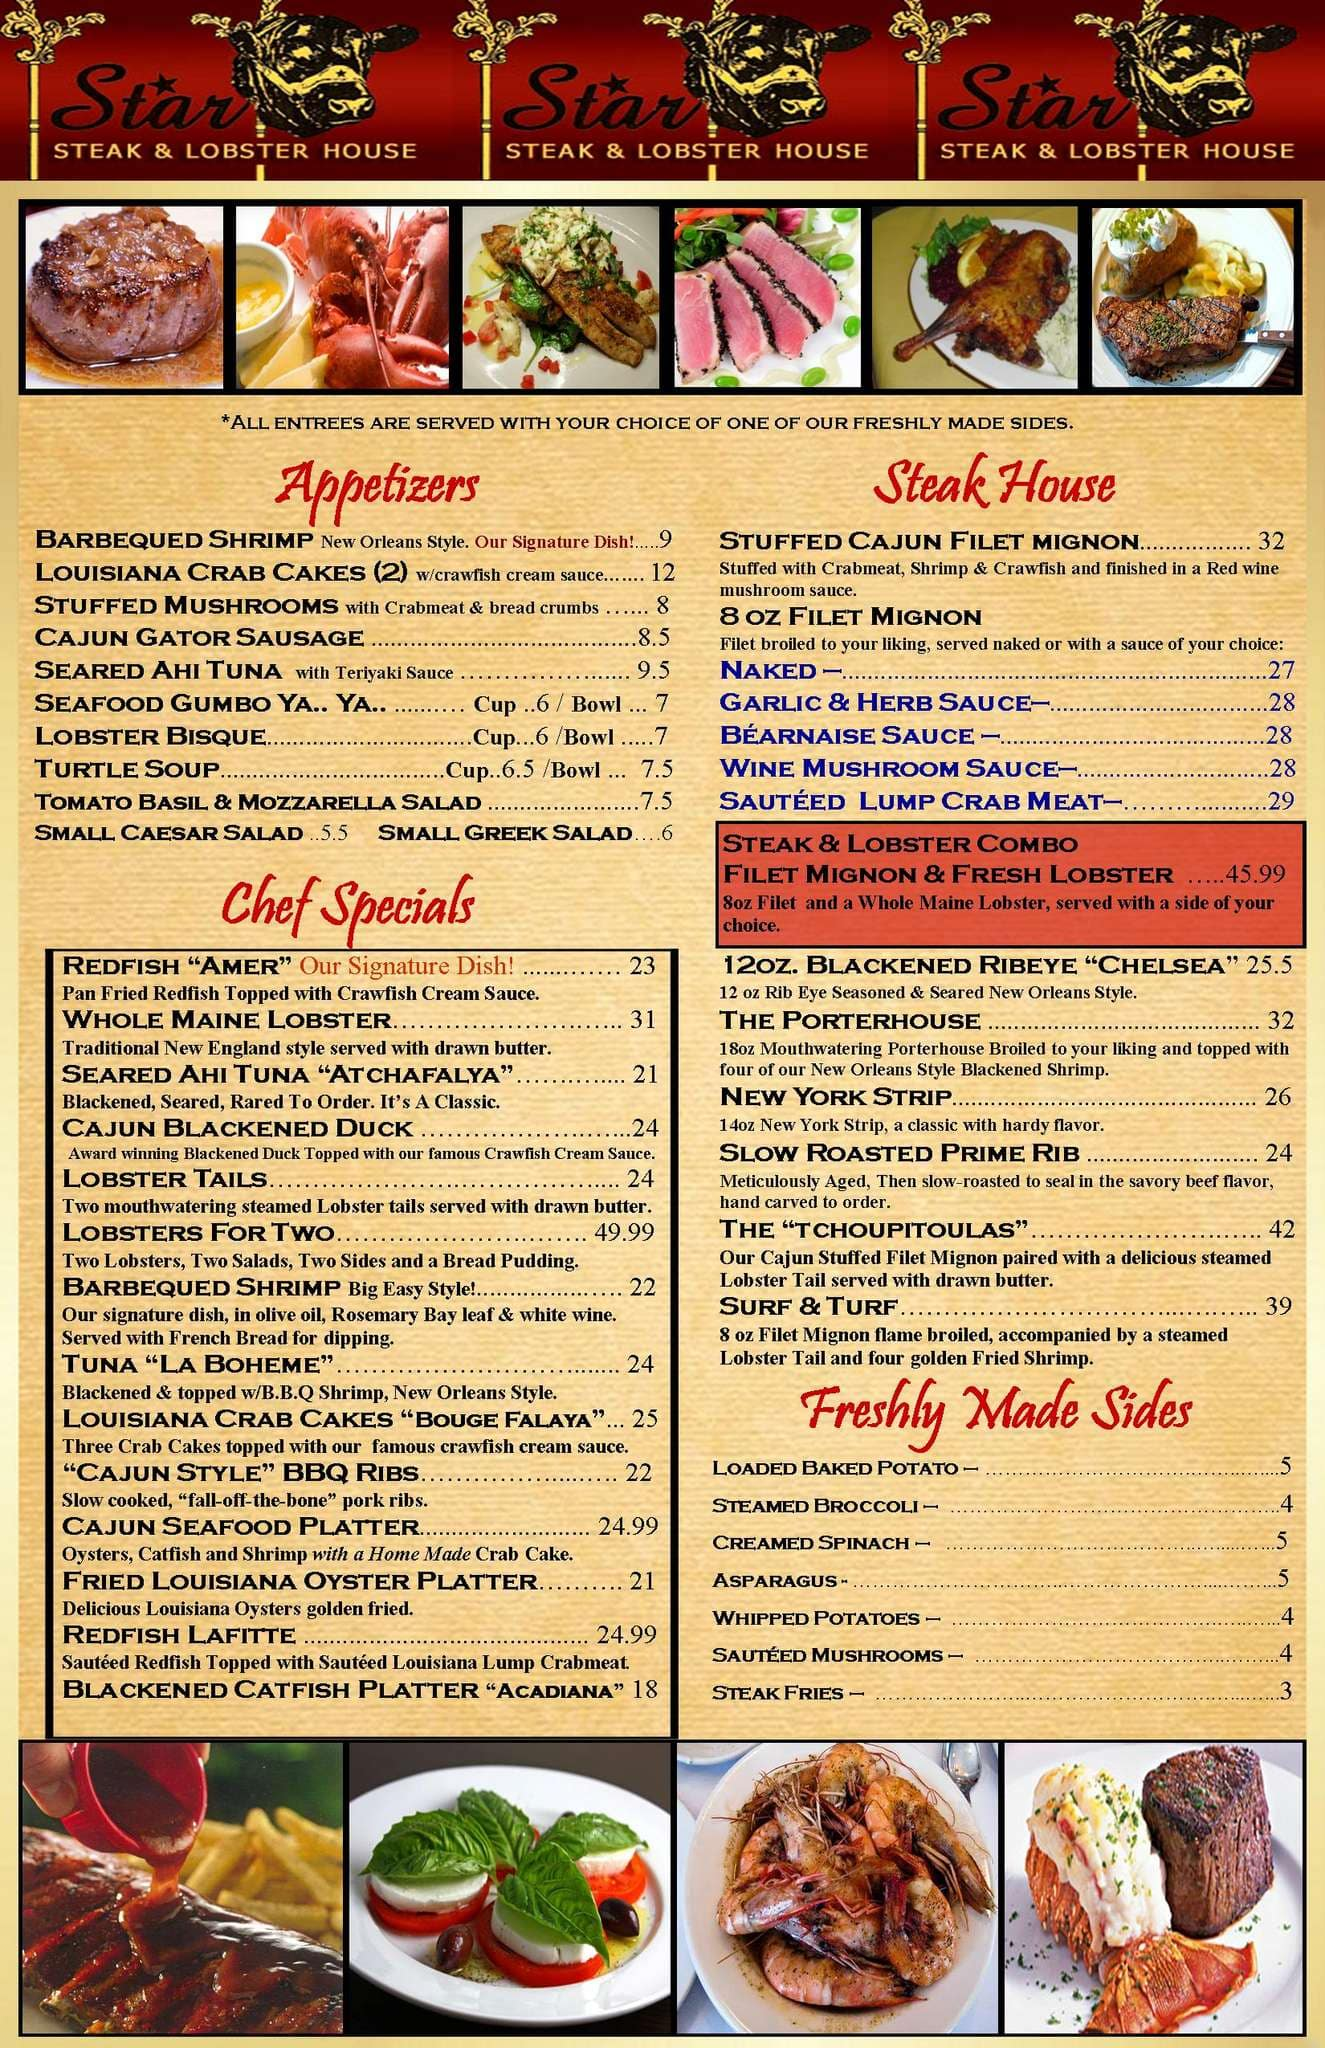 Estrella Steak And Lobster House, French Quarter Menu